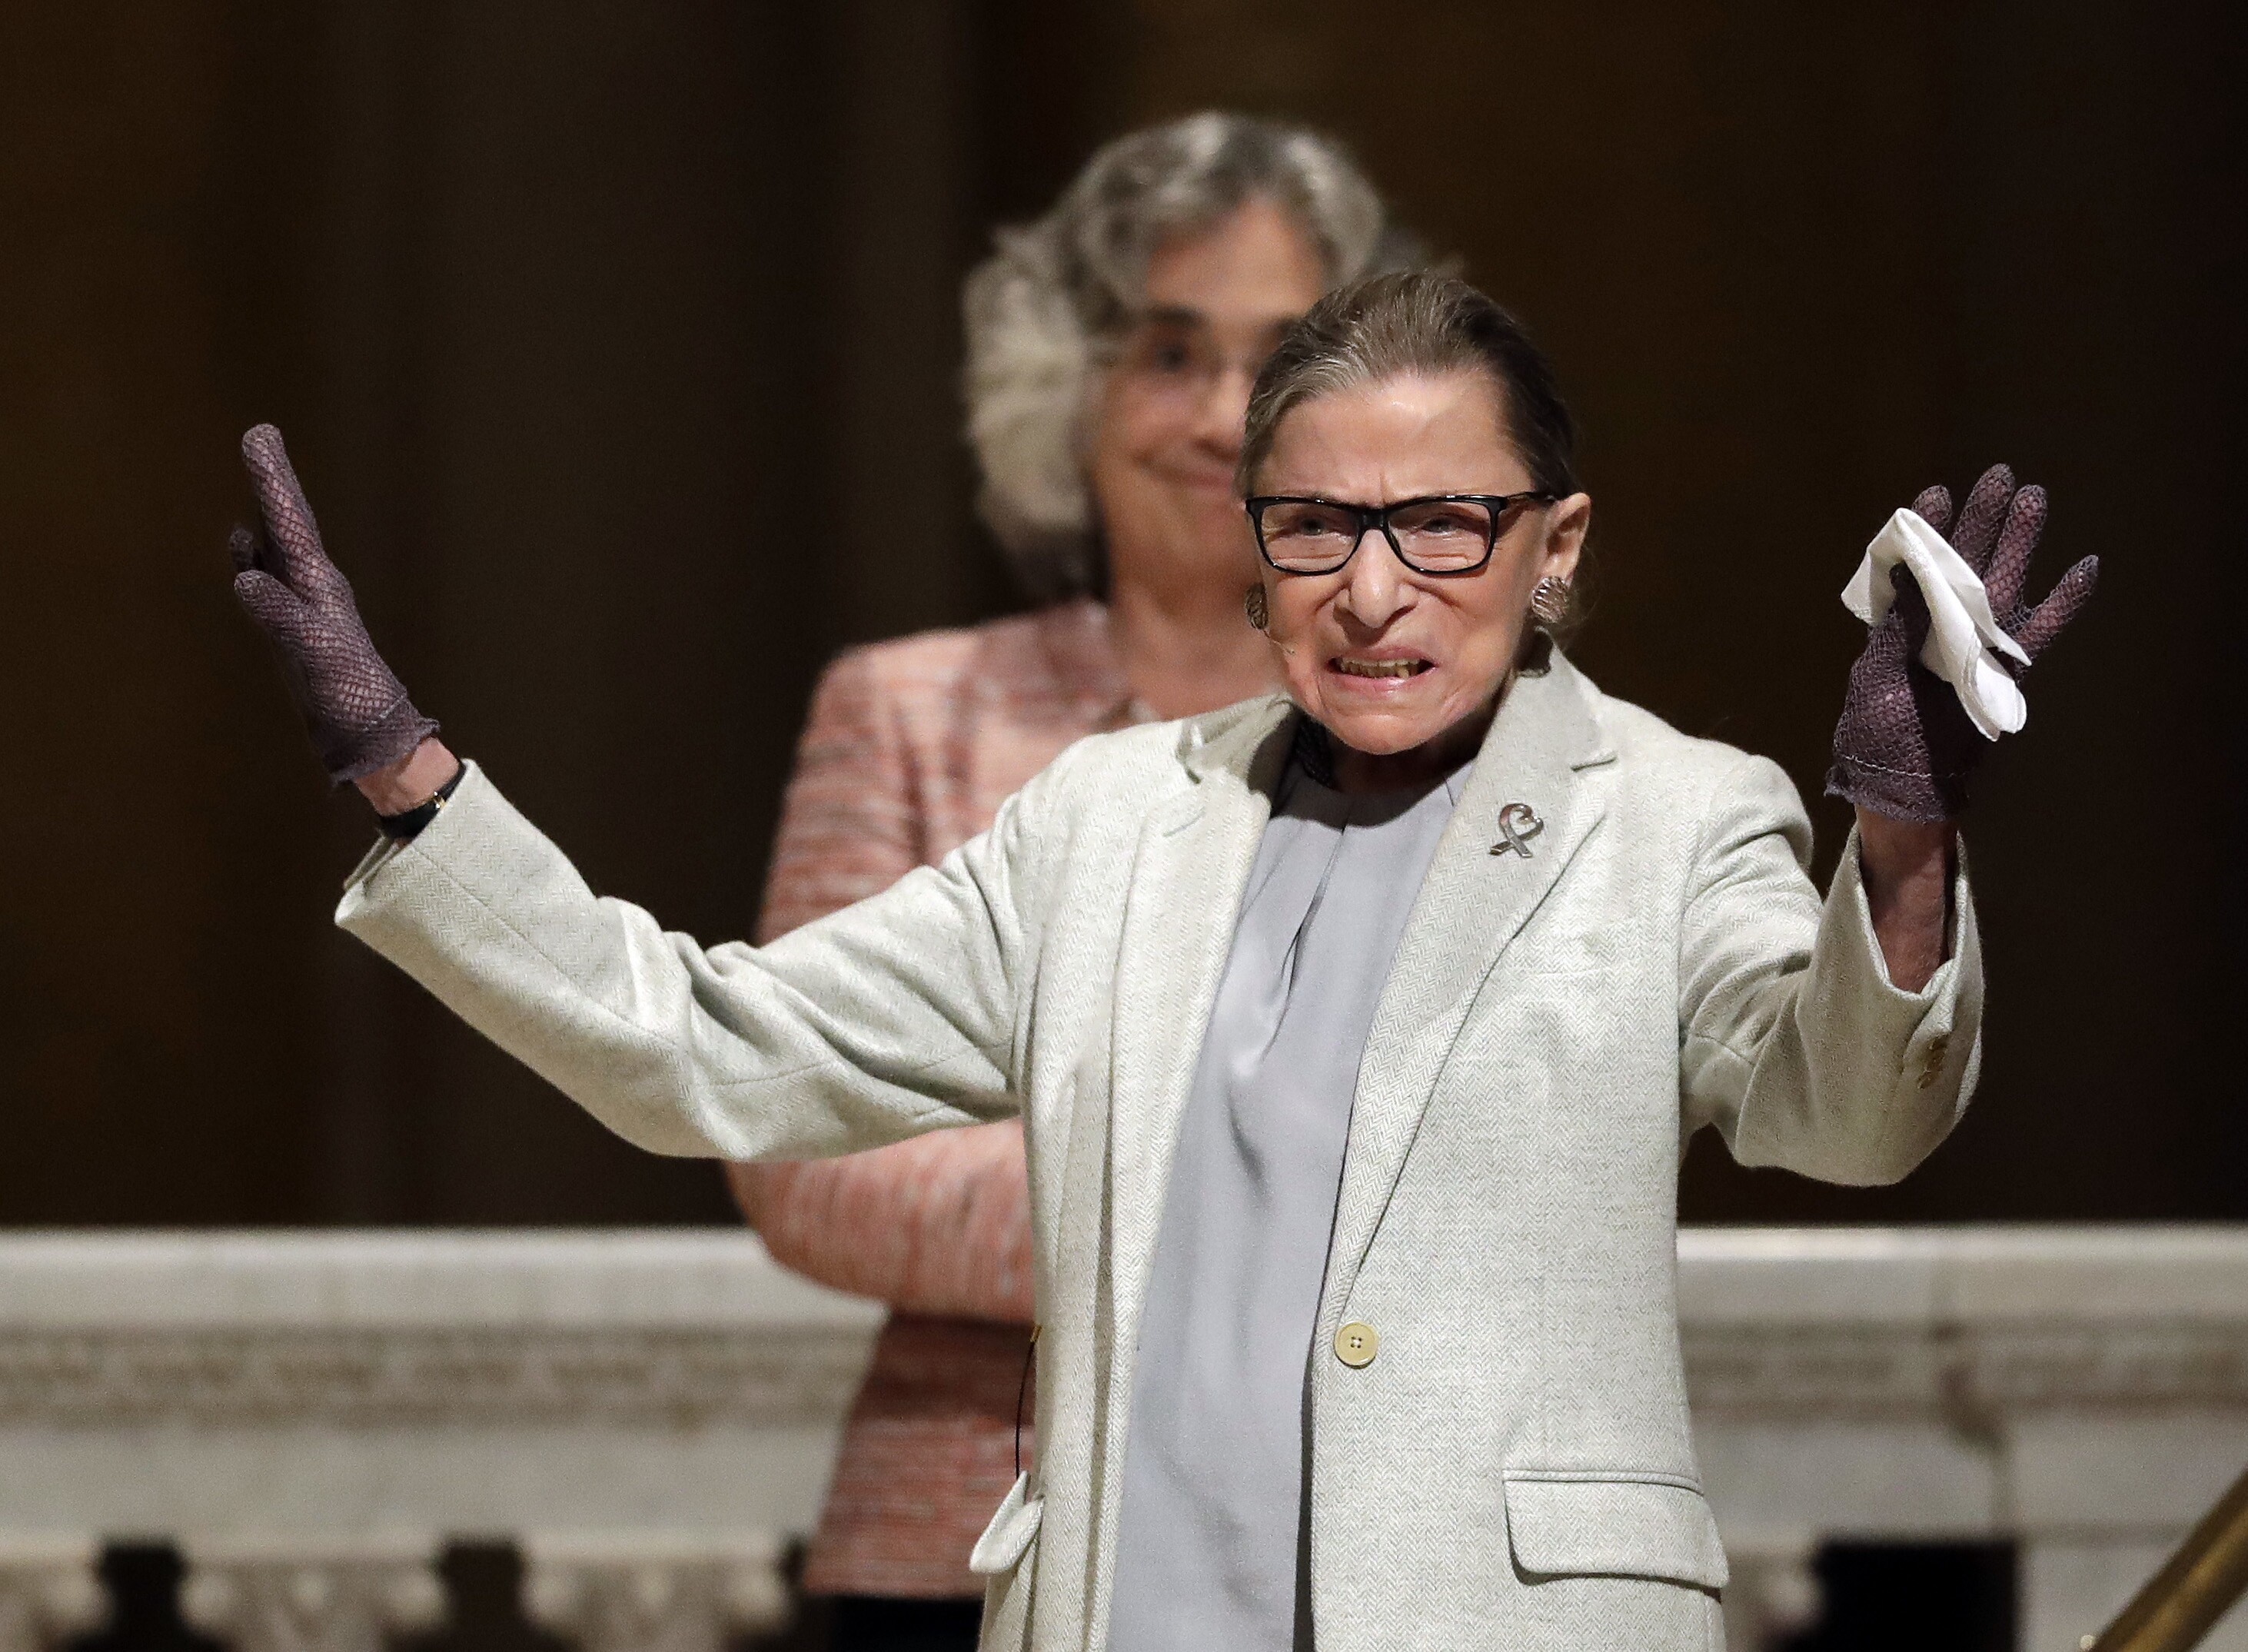 Ruth Bader Ginsburg Challenges Facing Young Women Today More Daunting Than In The 1950s